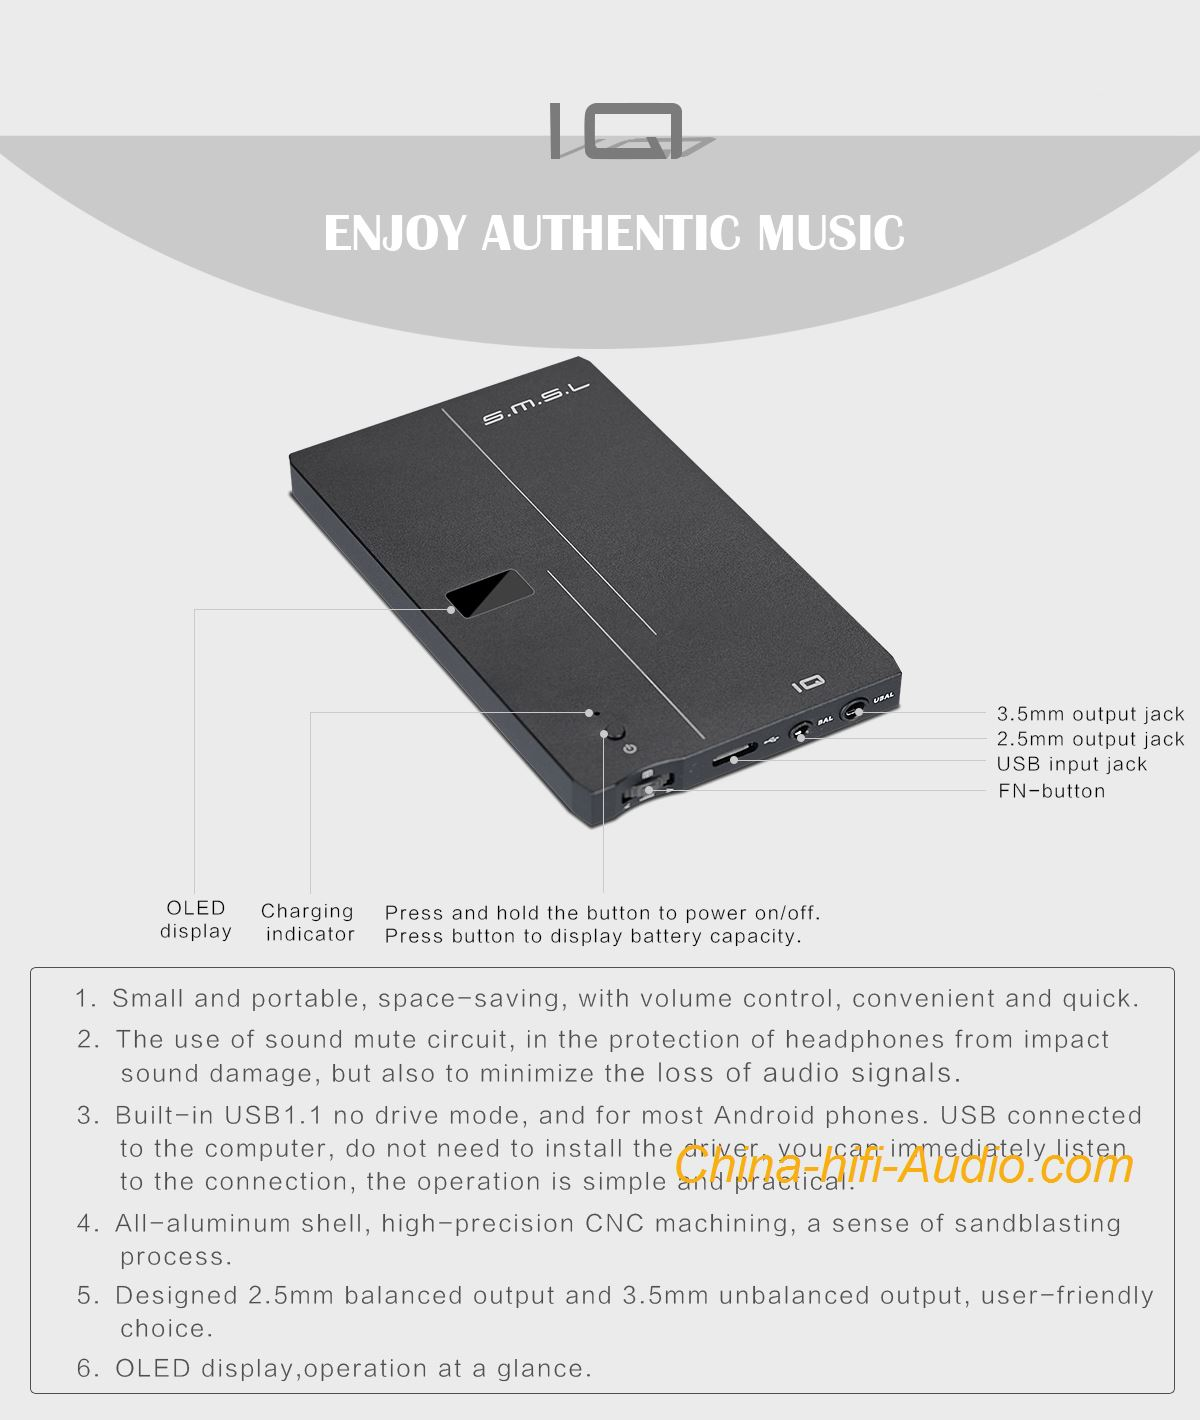 Smsl Iq Hifi Portable Dac Headphone Amplifier Xmos Usb Dsd512 Ra53 Stereo Connection Schematic Hi Res With Dsd Xcore200 Xu208 32bit 768khz 100 Brand New